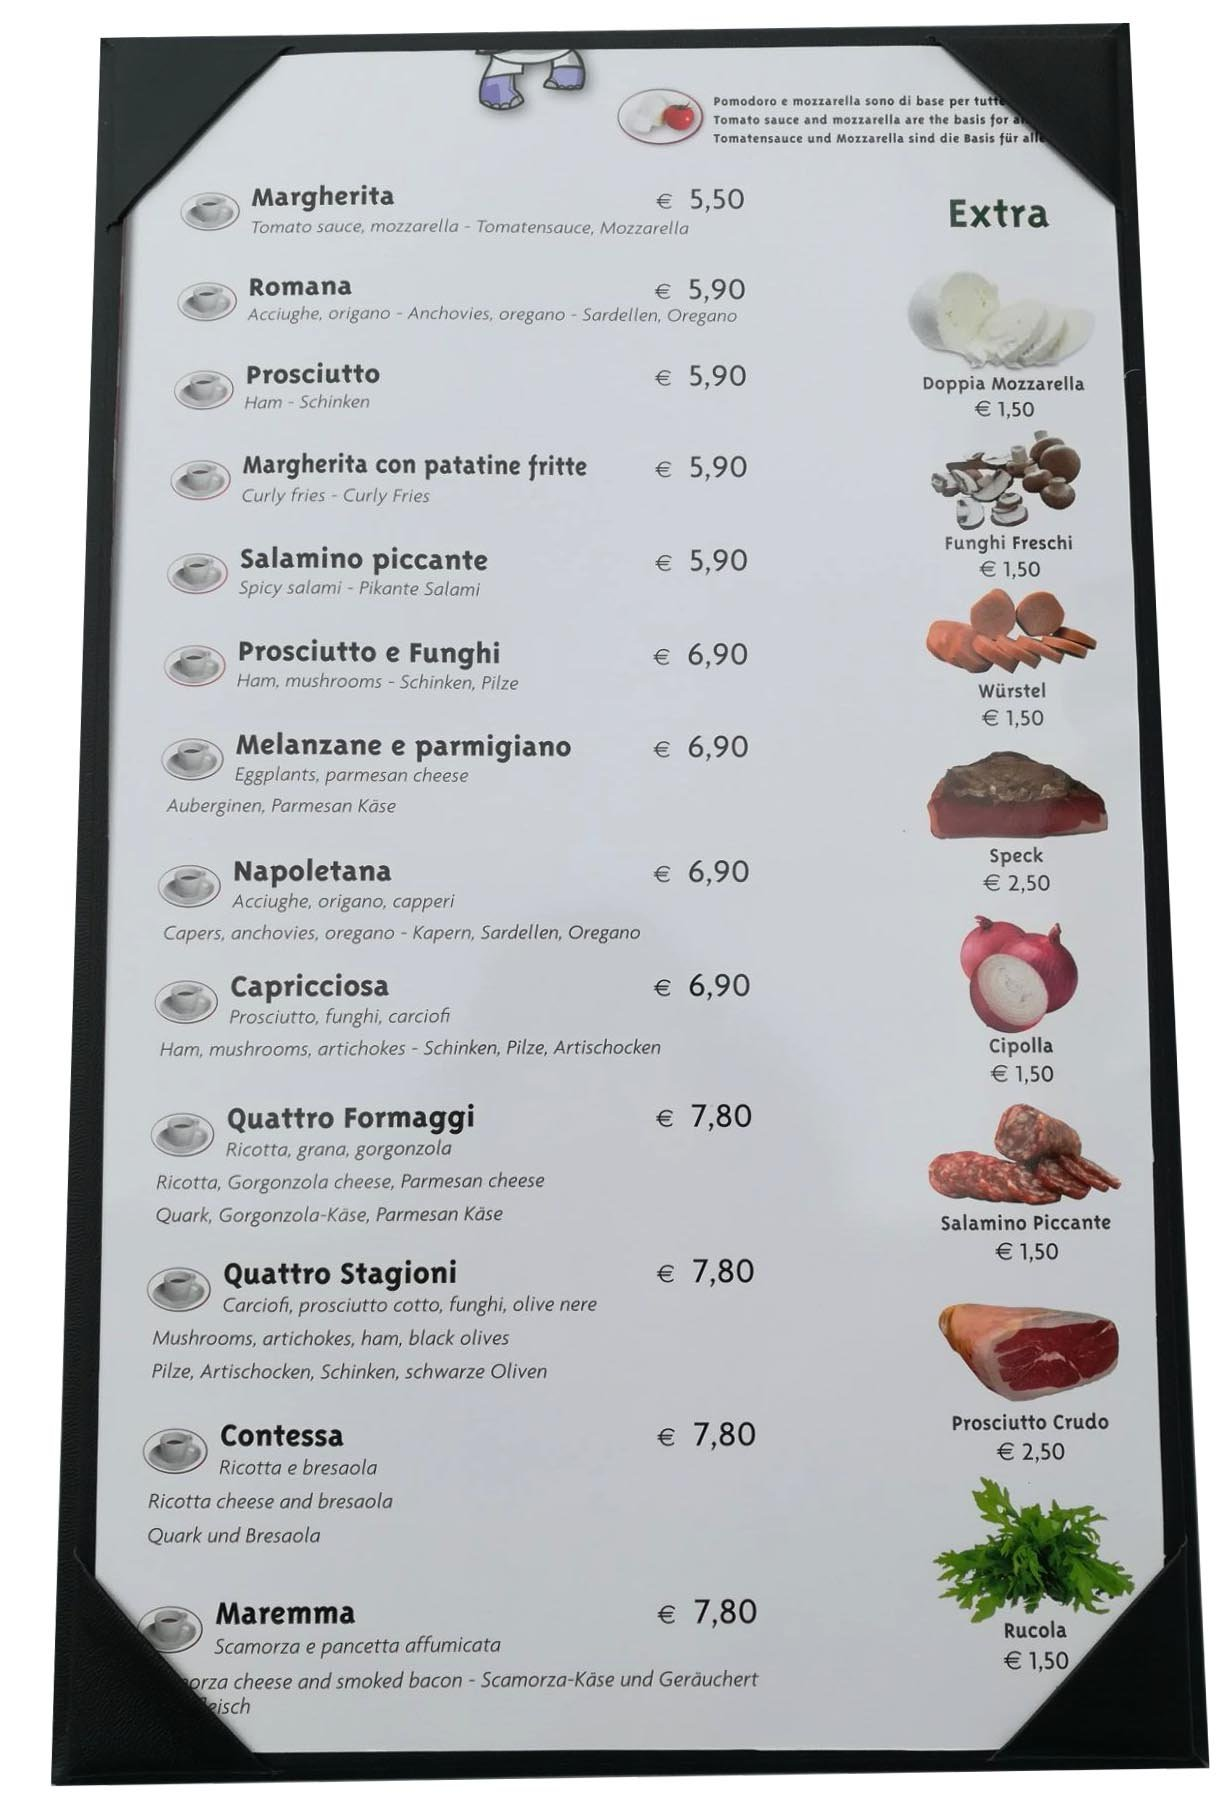 10 Pcs of Restaurant Menu Covers Holders 8.5'' X 14'' Inches,Single View,Sold By Box,With Clear PVC sheets for Paper Protection